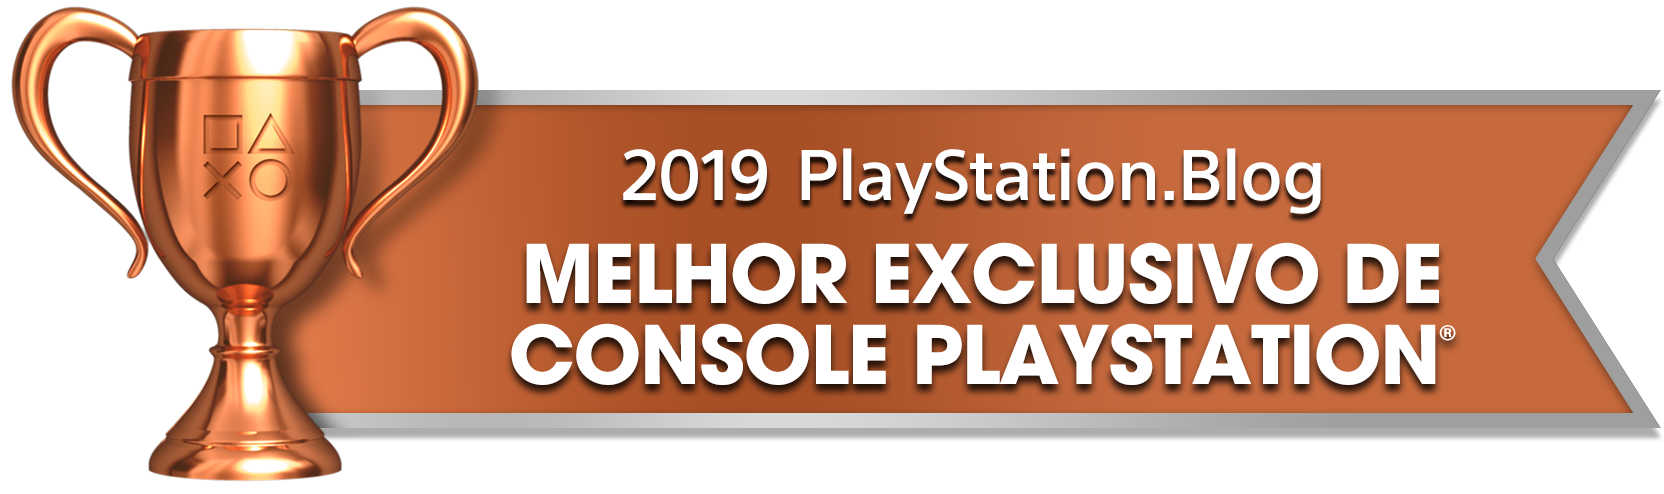 PS Blog Game of the Year 2019 - Best Console Exclusive - 4 - Bronze